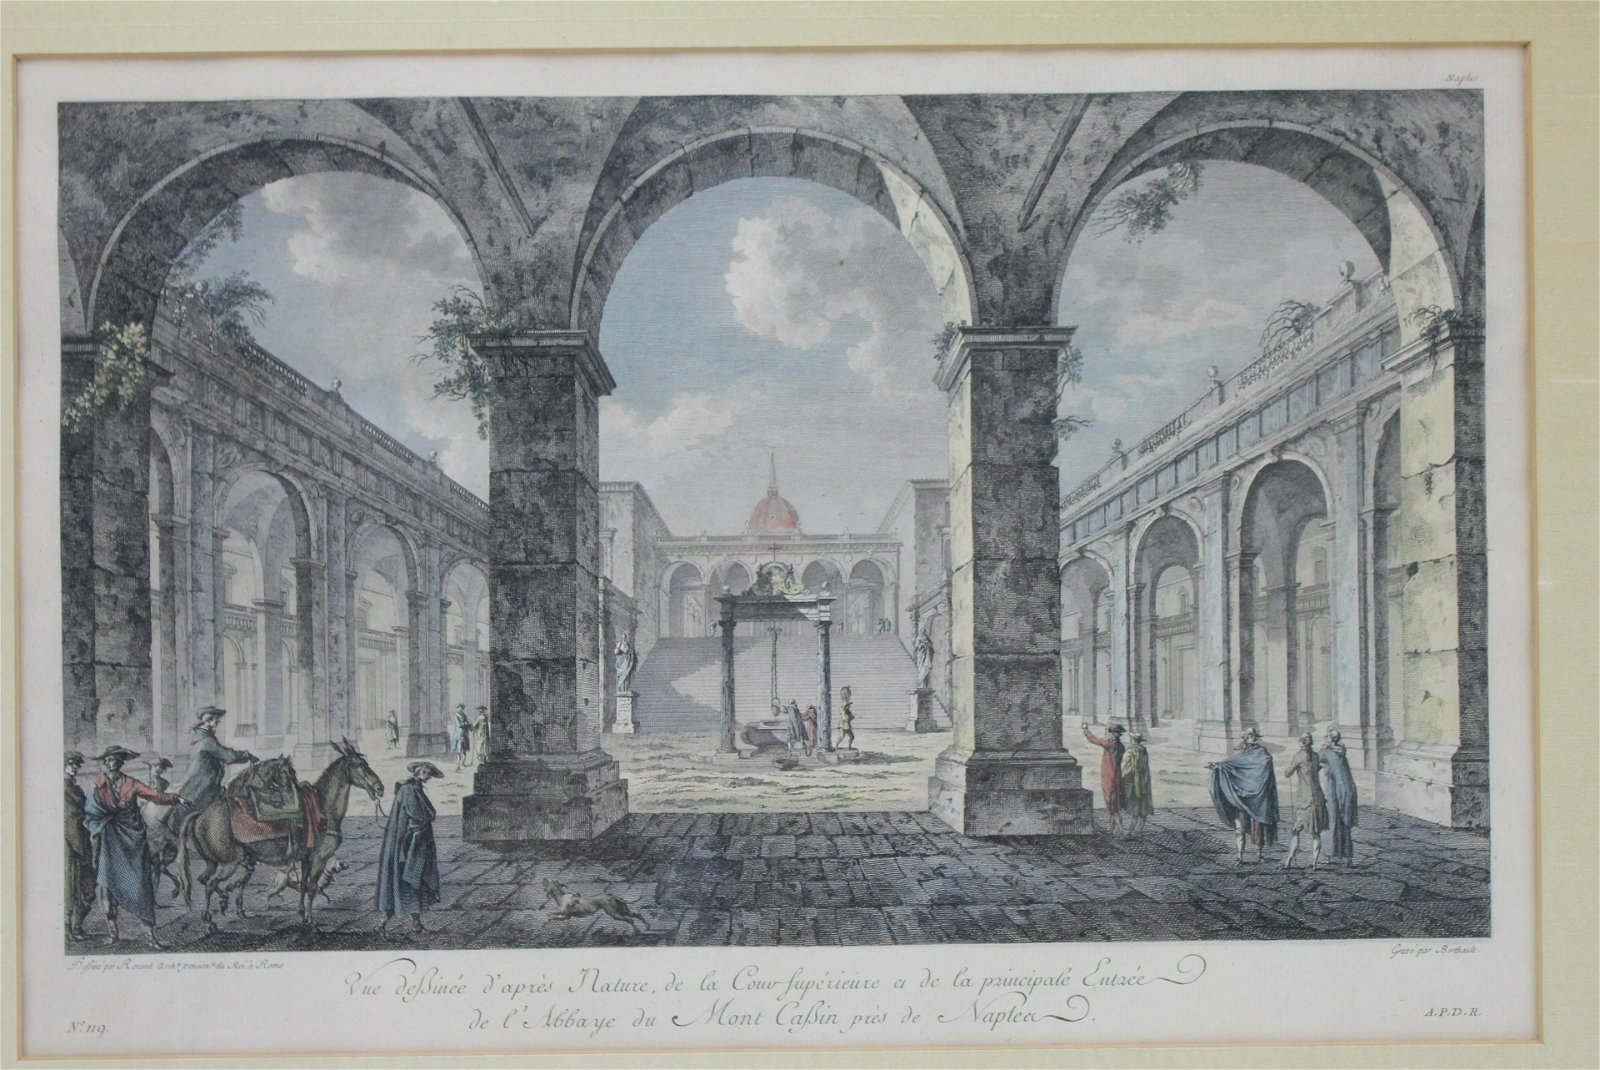 18TH C ENGRAVING, A VIEW OF THE ABBEY AT MONTE CAS